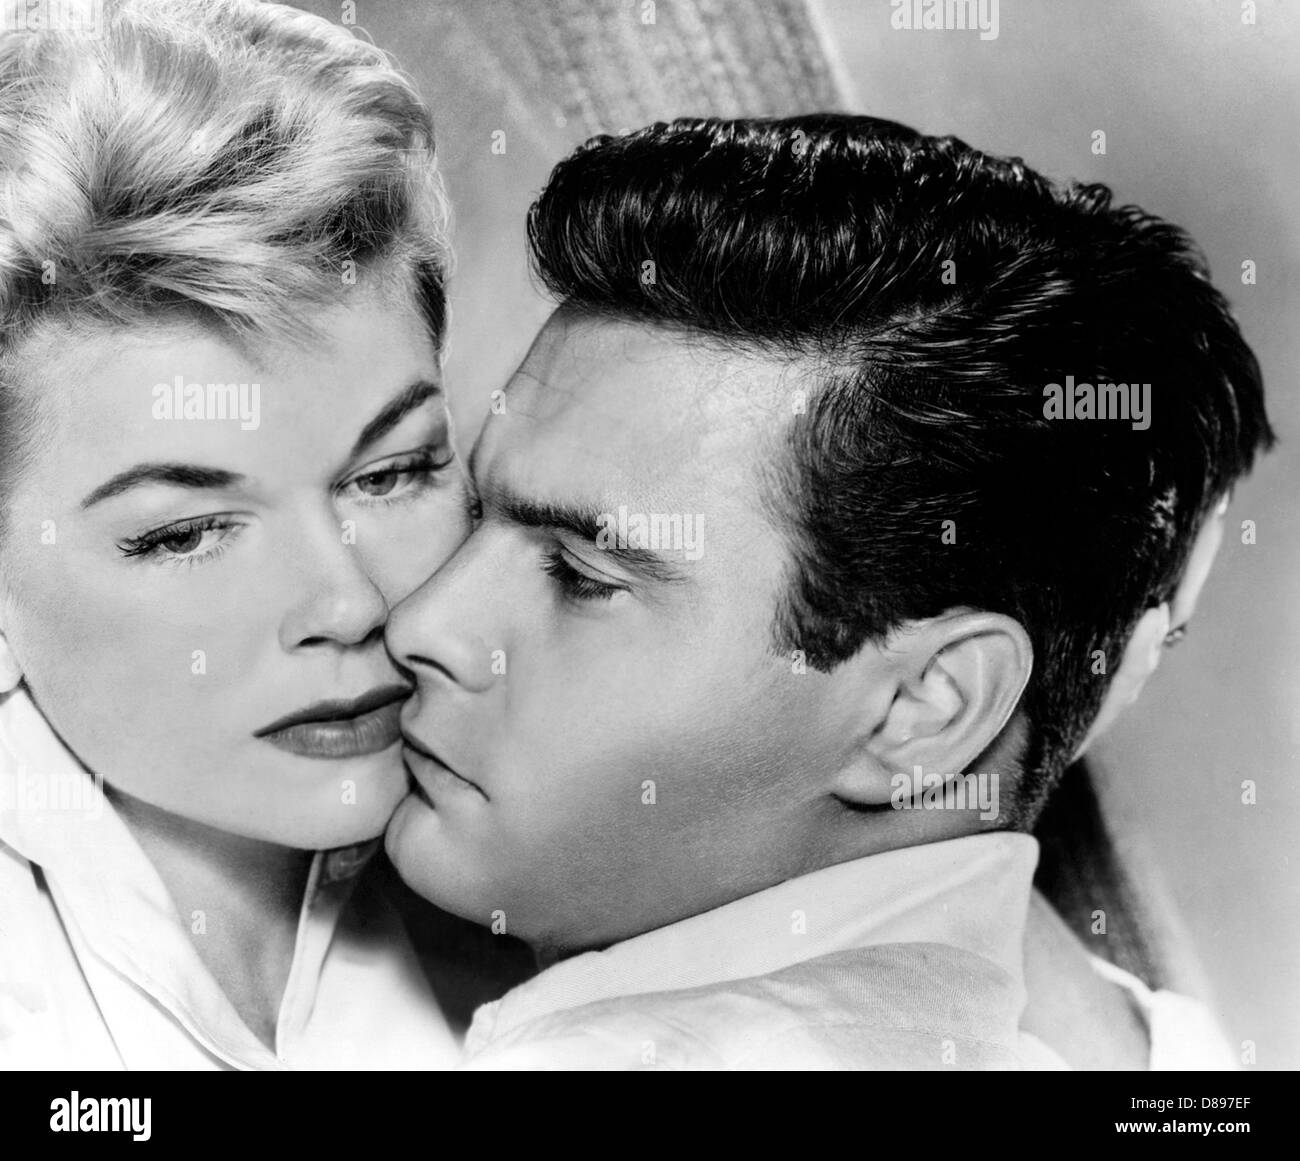 JULIE  1956 MGM film with Dois Day and Louis Jordan - Stock Image